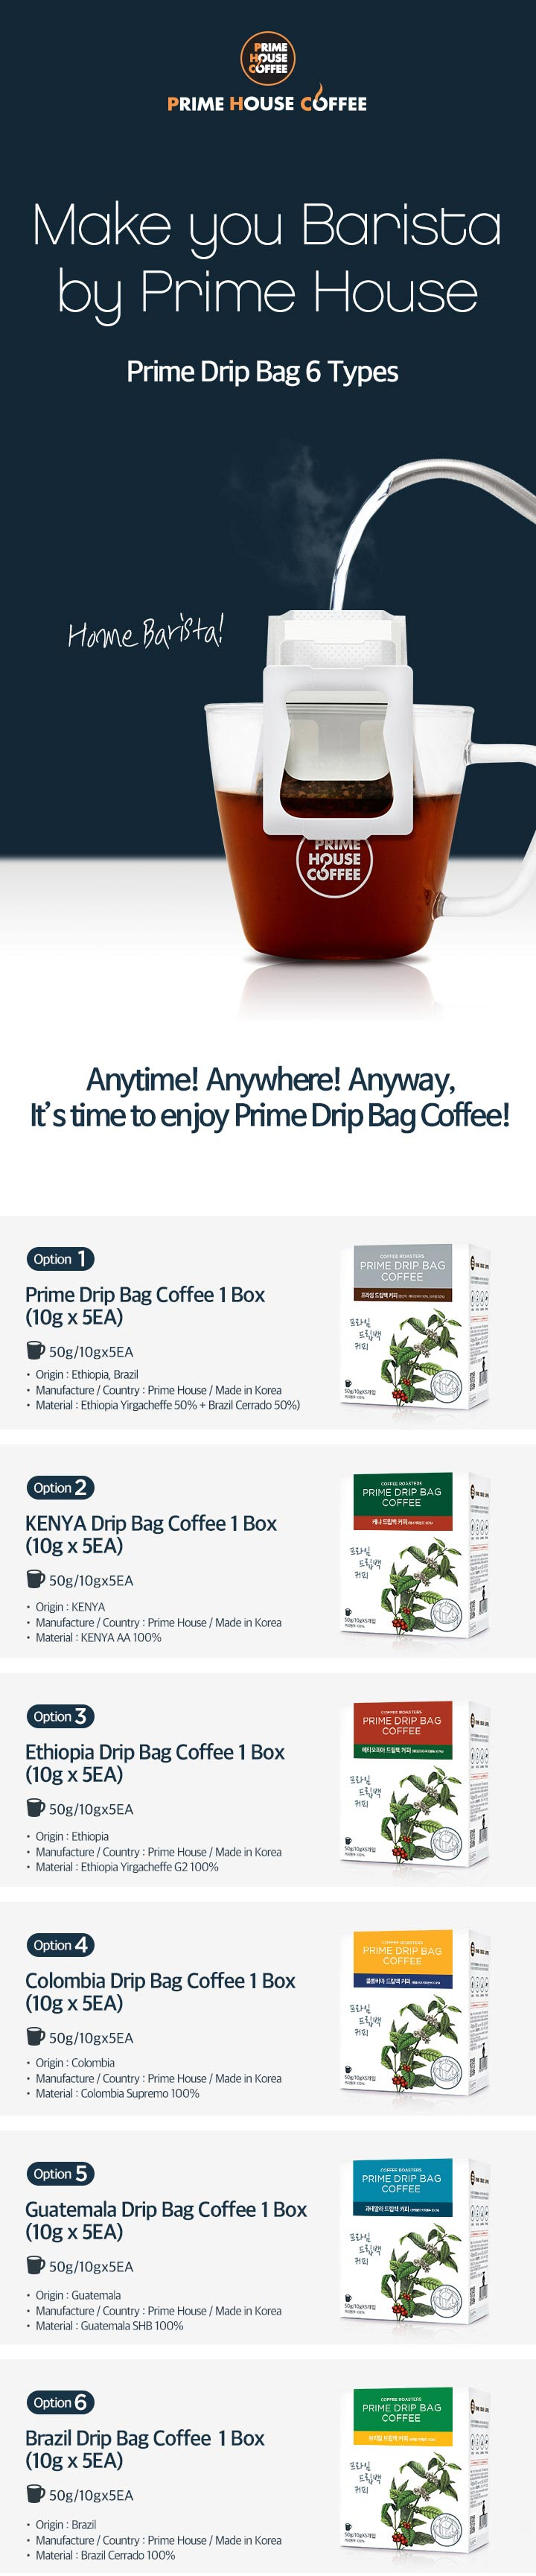 Prime Drip Bag Coffee Series